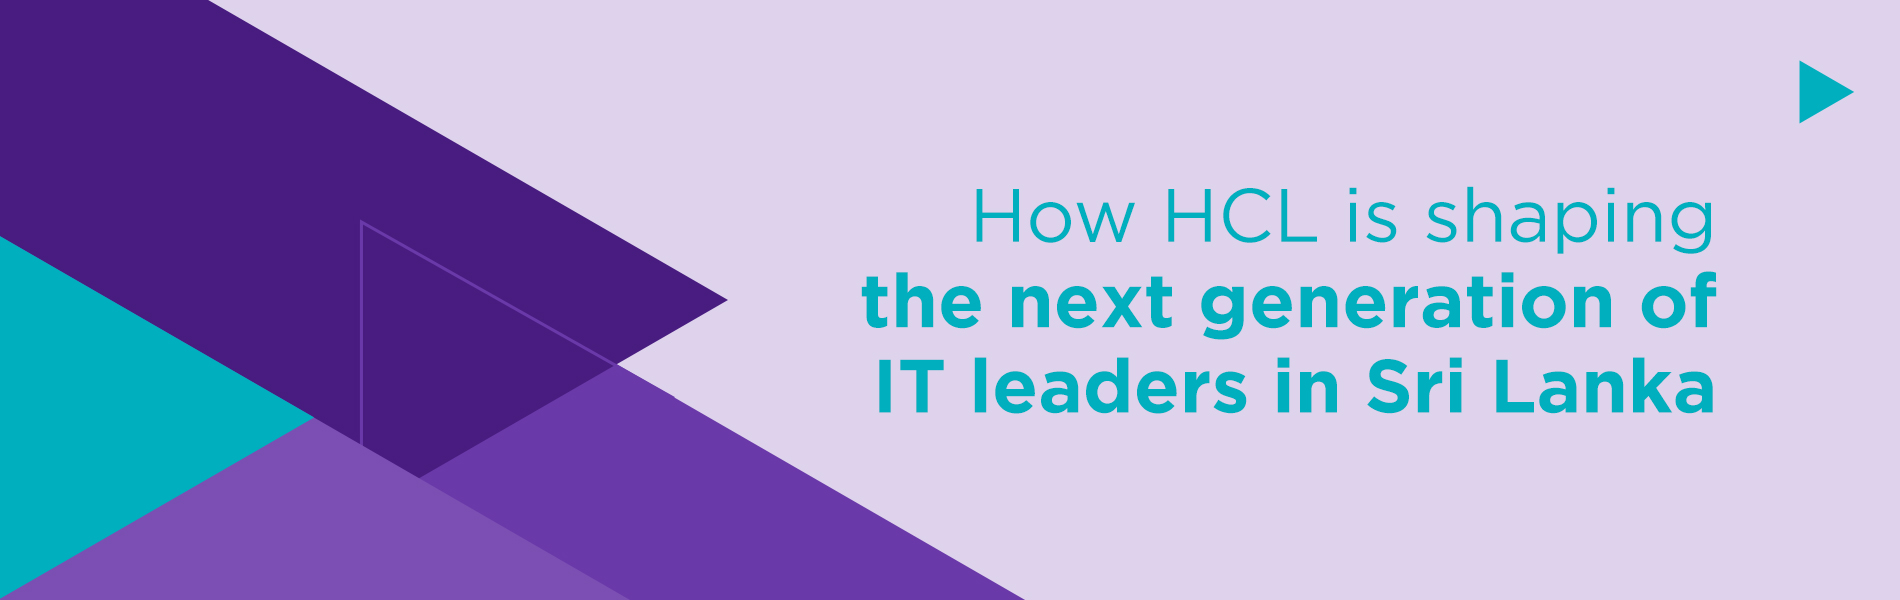 How HCL is shaping the next generation of IT leaders in Sri Lanka